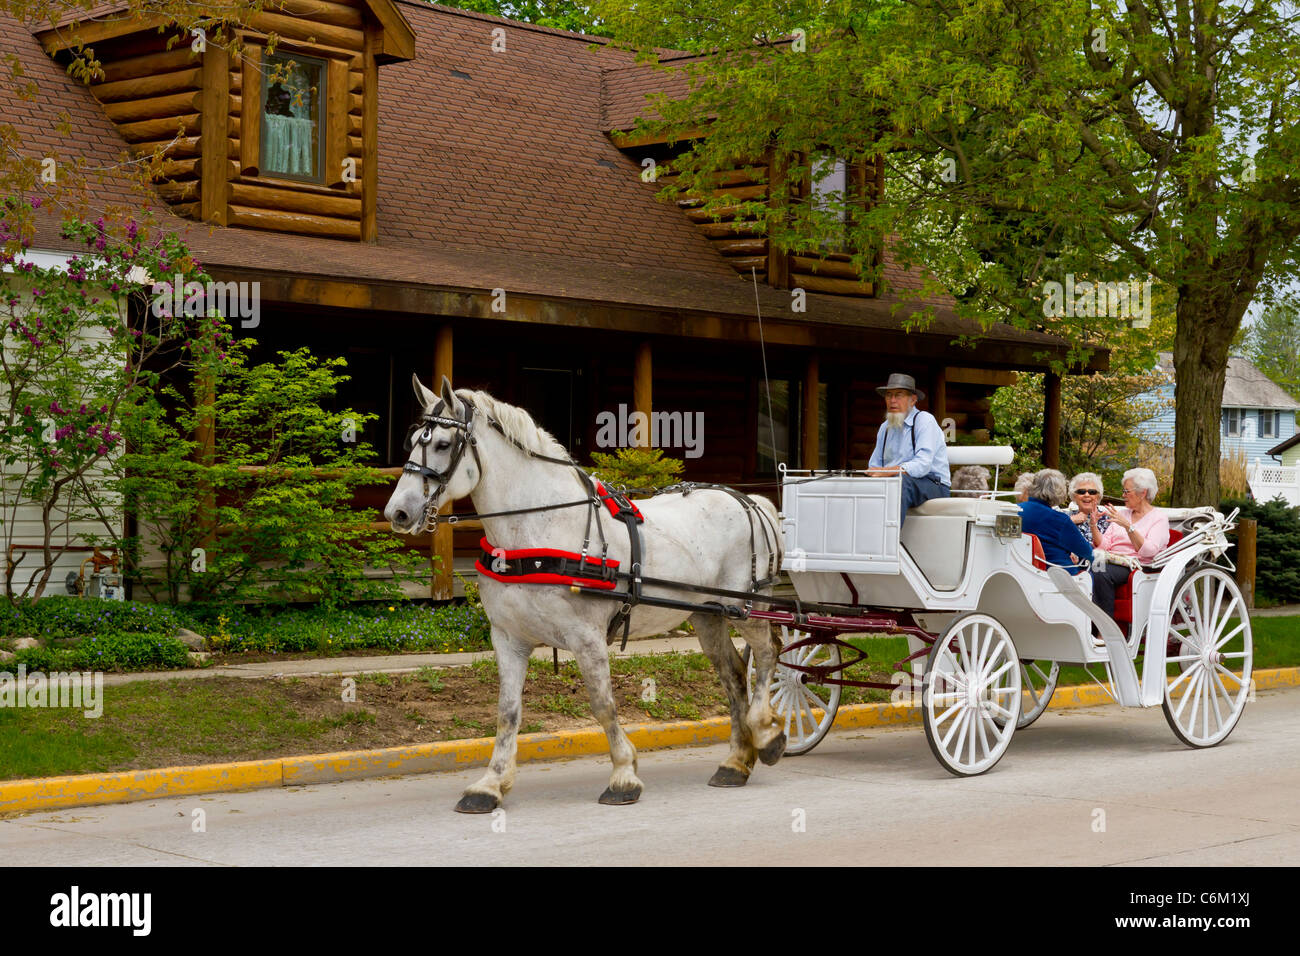 Horse and buggy rides for tourists in Shipshewana, Indiana, USA. - Stock Image